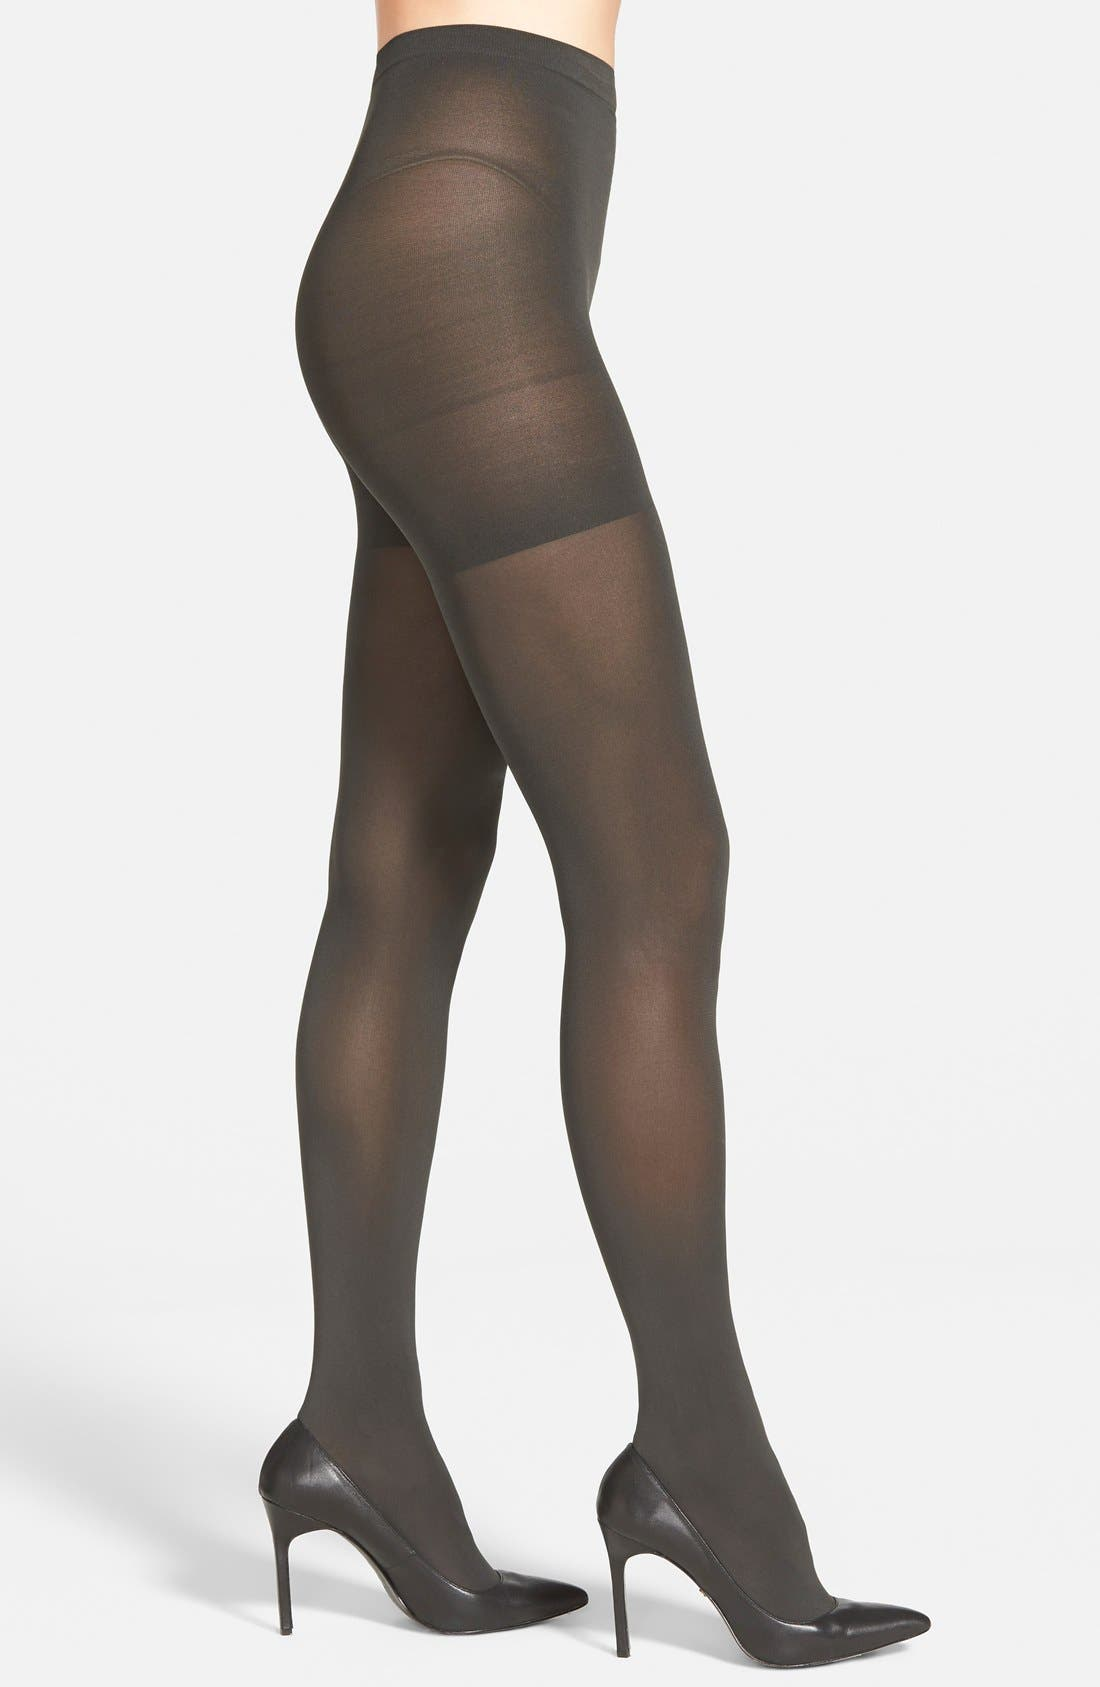 Alternate Image 1 Selected - SPANX® 'Tight End' Shaping Tights (Regular & Plus Size)